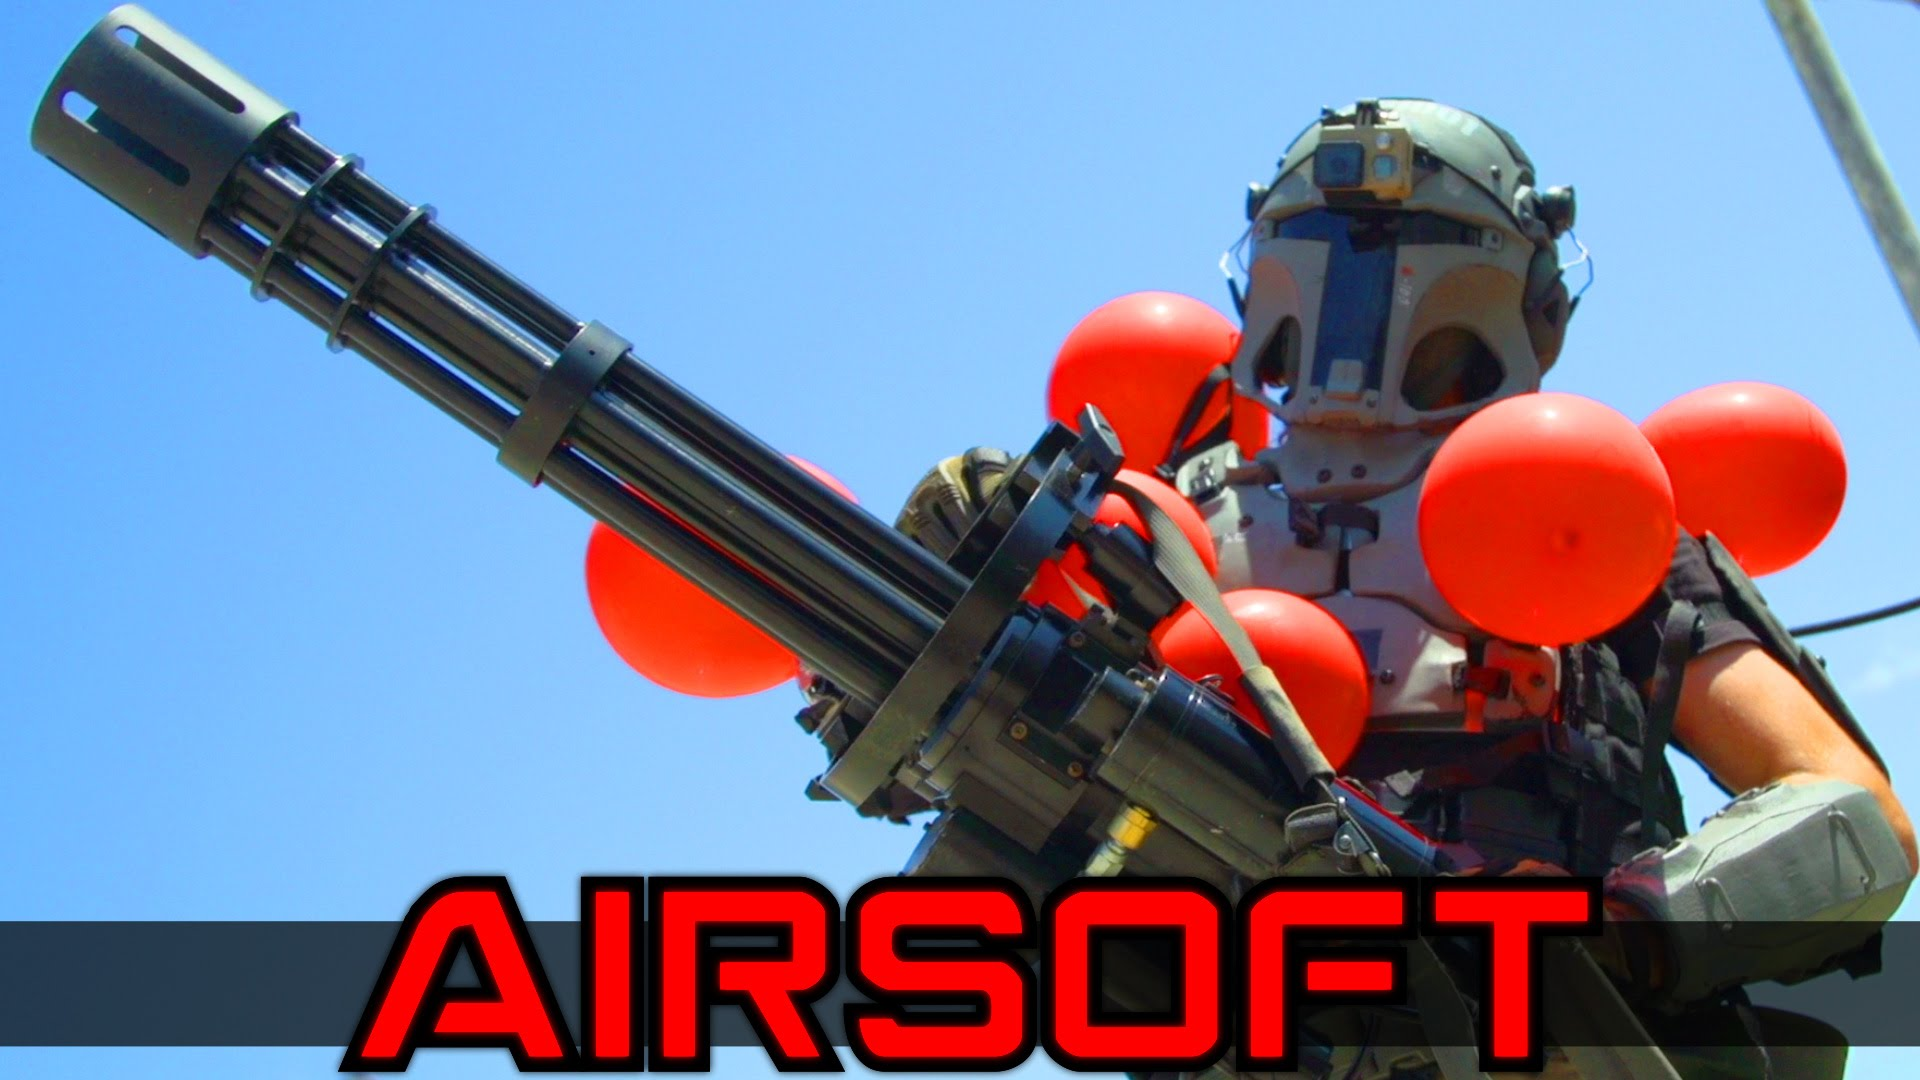 Amazing Airsoft Pictures & Backgrounds